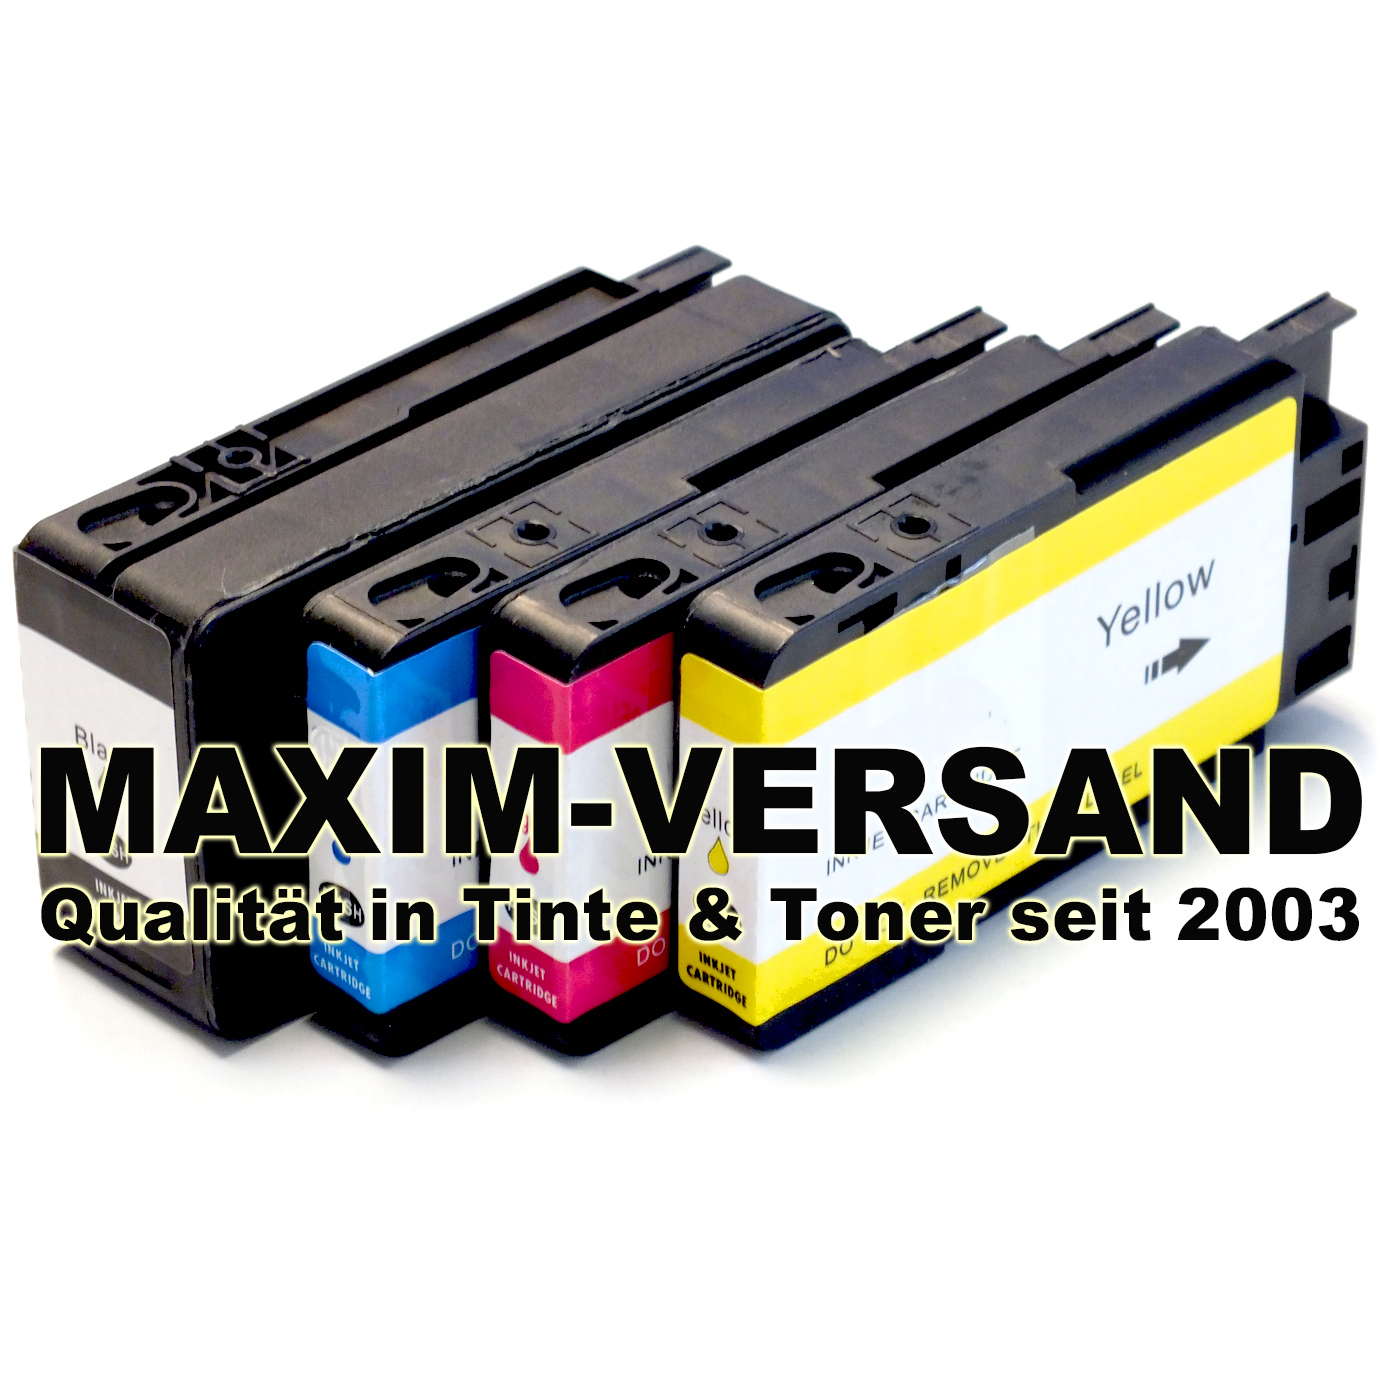 HP 953 XL Black(1), Cyan, Yellow, Magenta - kompatibel - alle Farben (4er Set)